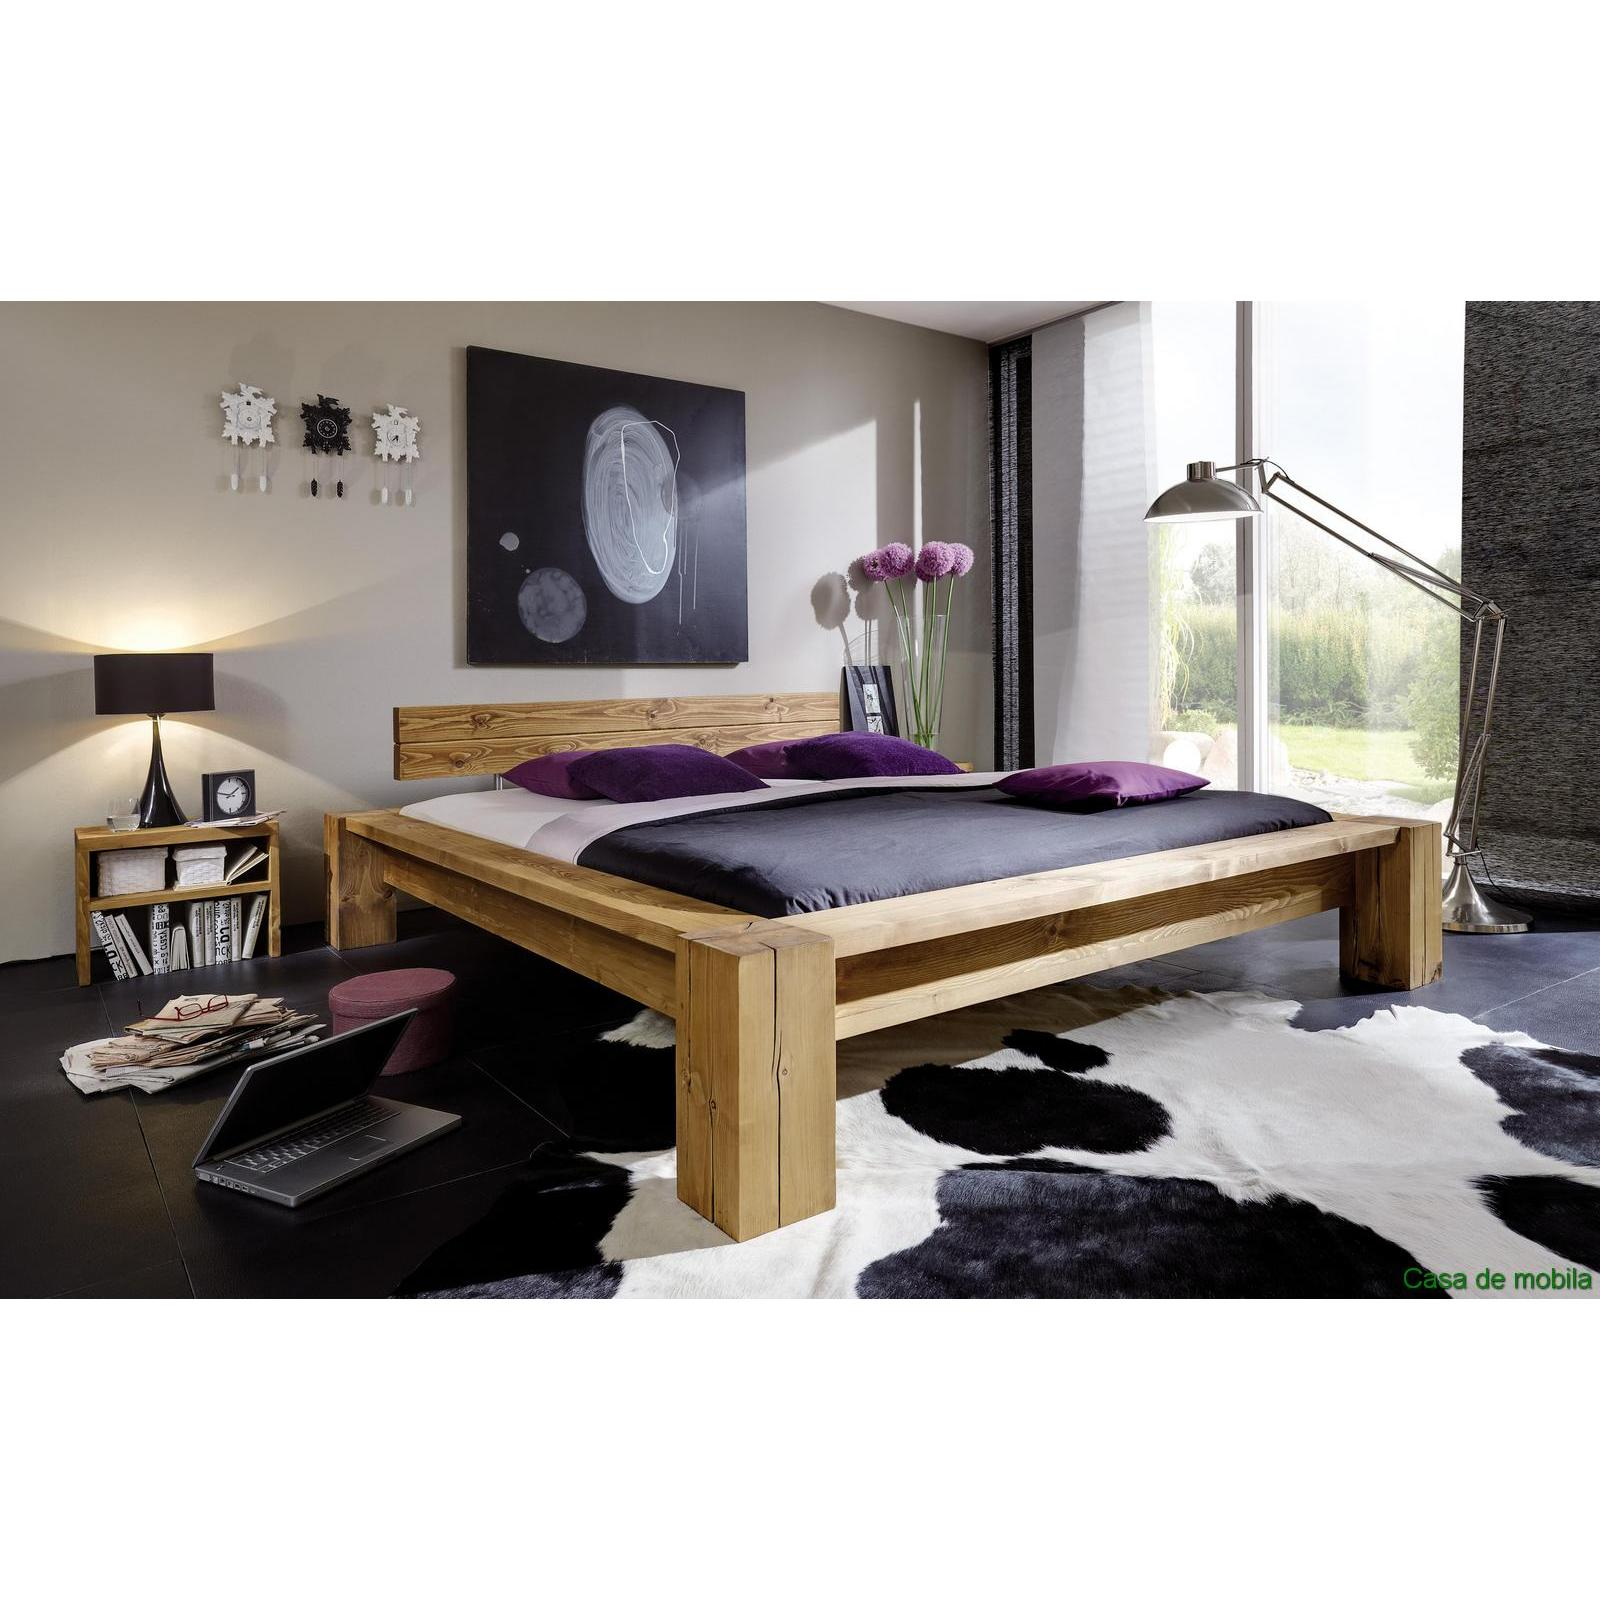 echtholz balkenbett fichte massiv holz antik gewachst doppelbett 180x200 taiga. Black Bedroom Furniture Sets. Home Design Ideas